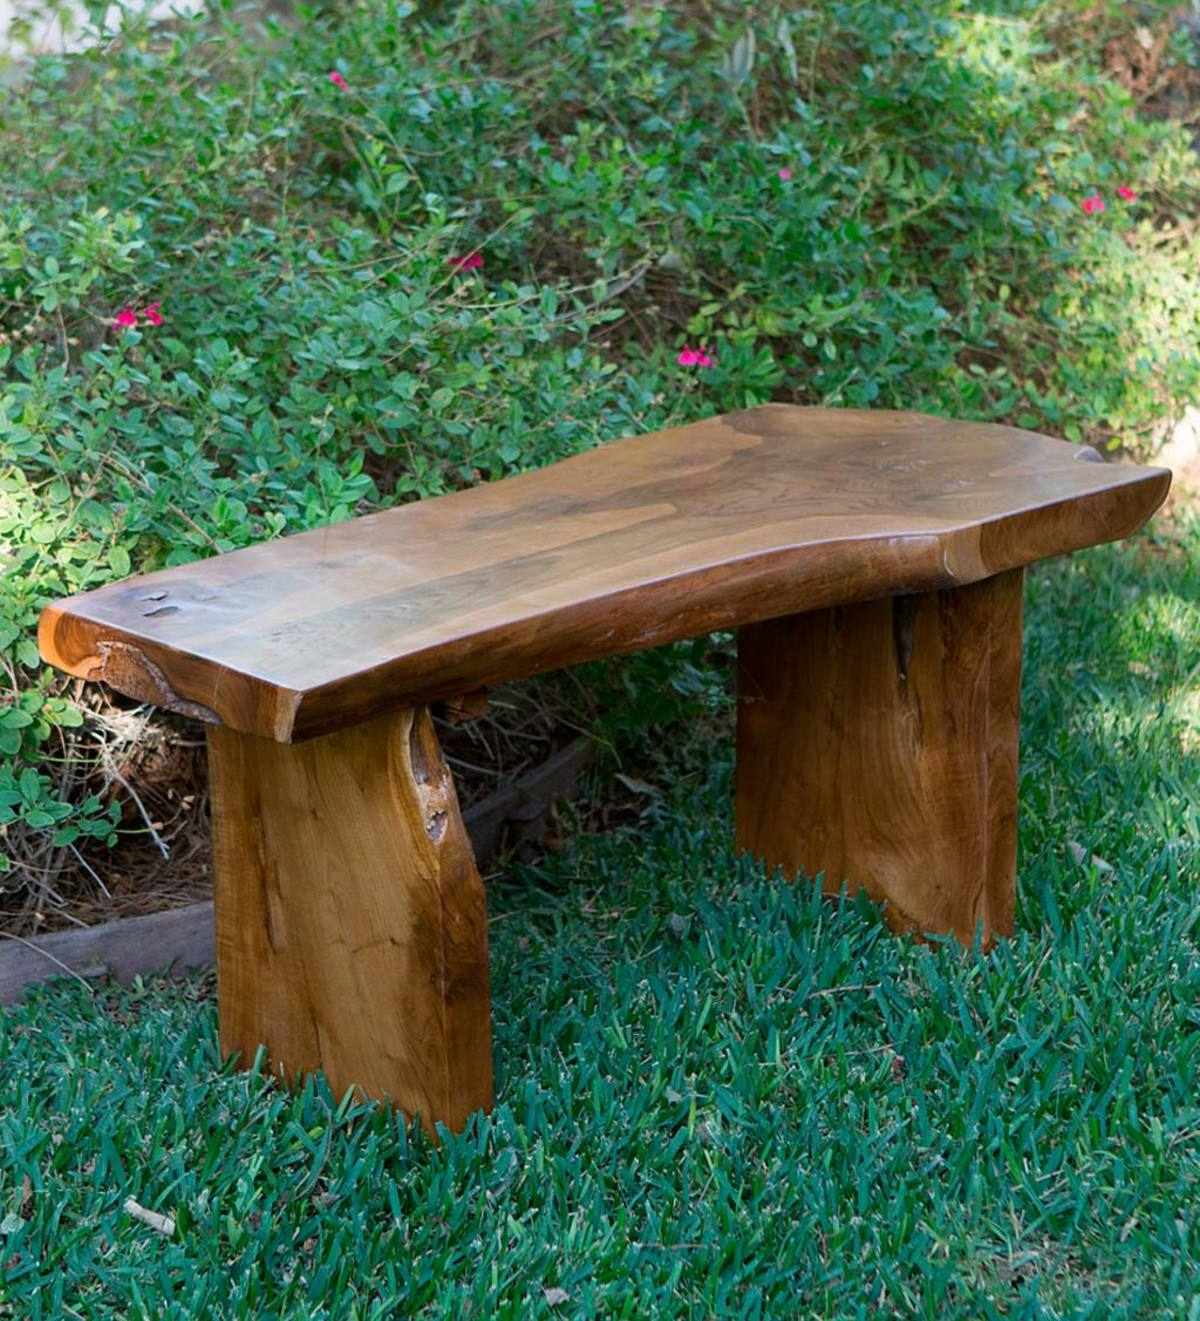 Swell Small Garden Teak Bench Vivaterra Gamerscity Chair Design For Home Gamerscityorg